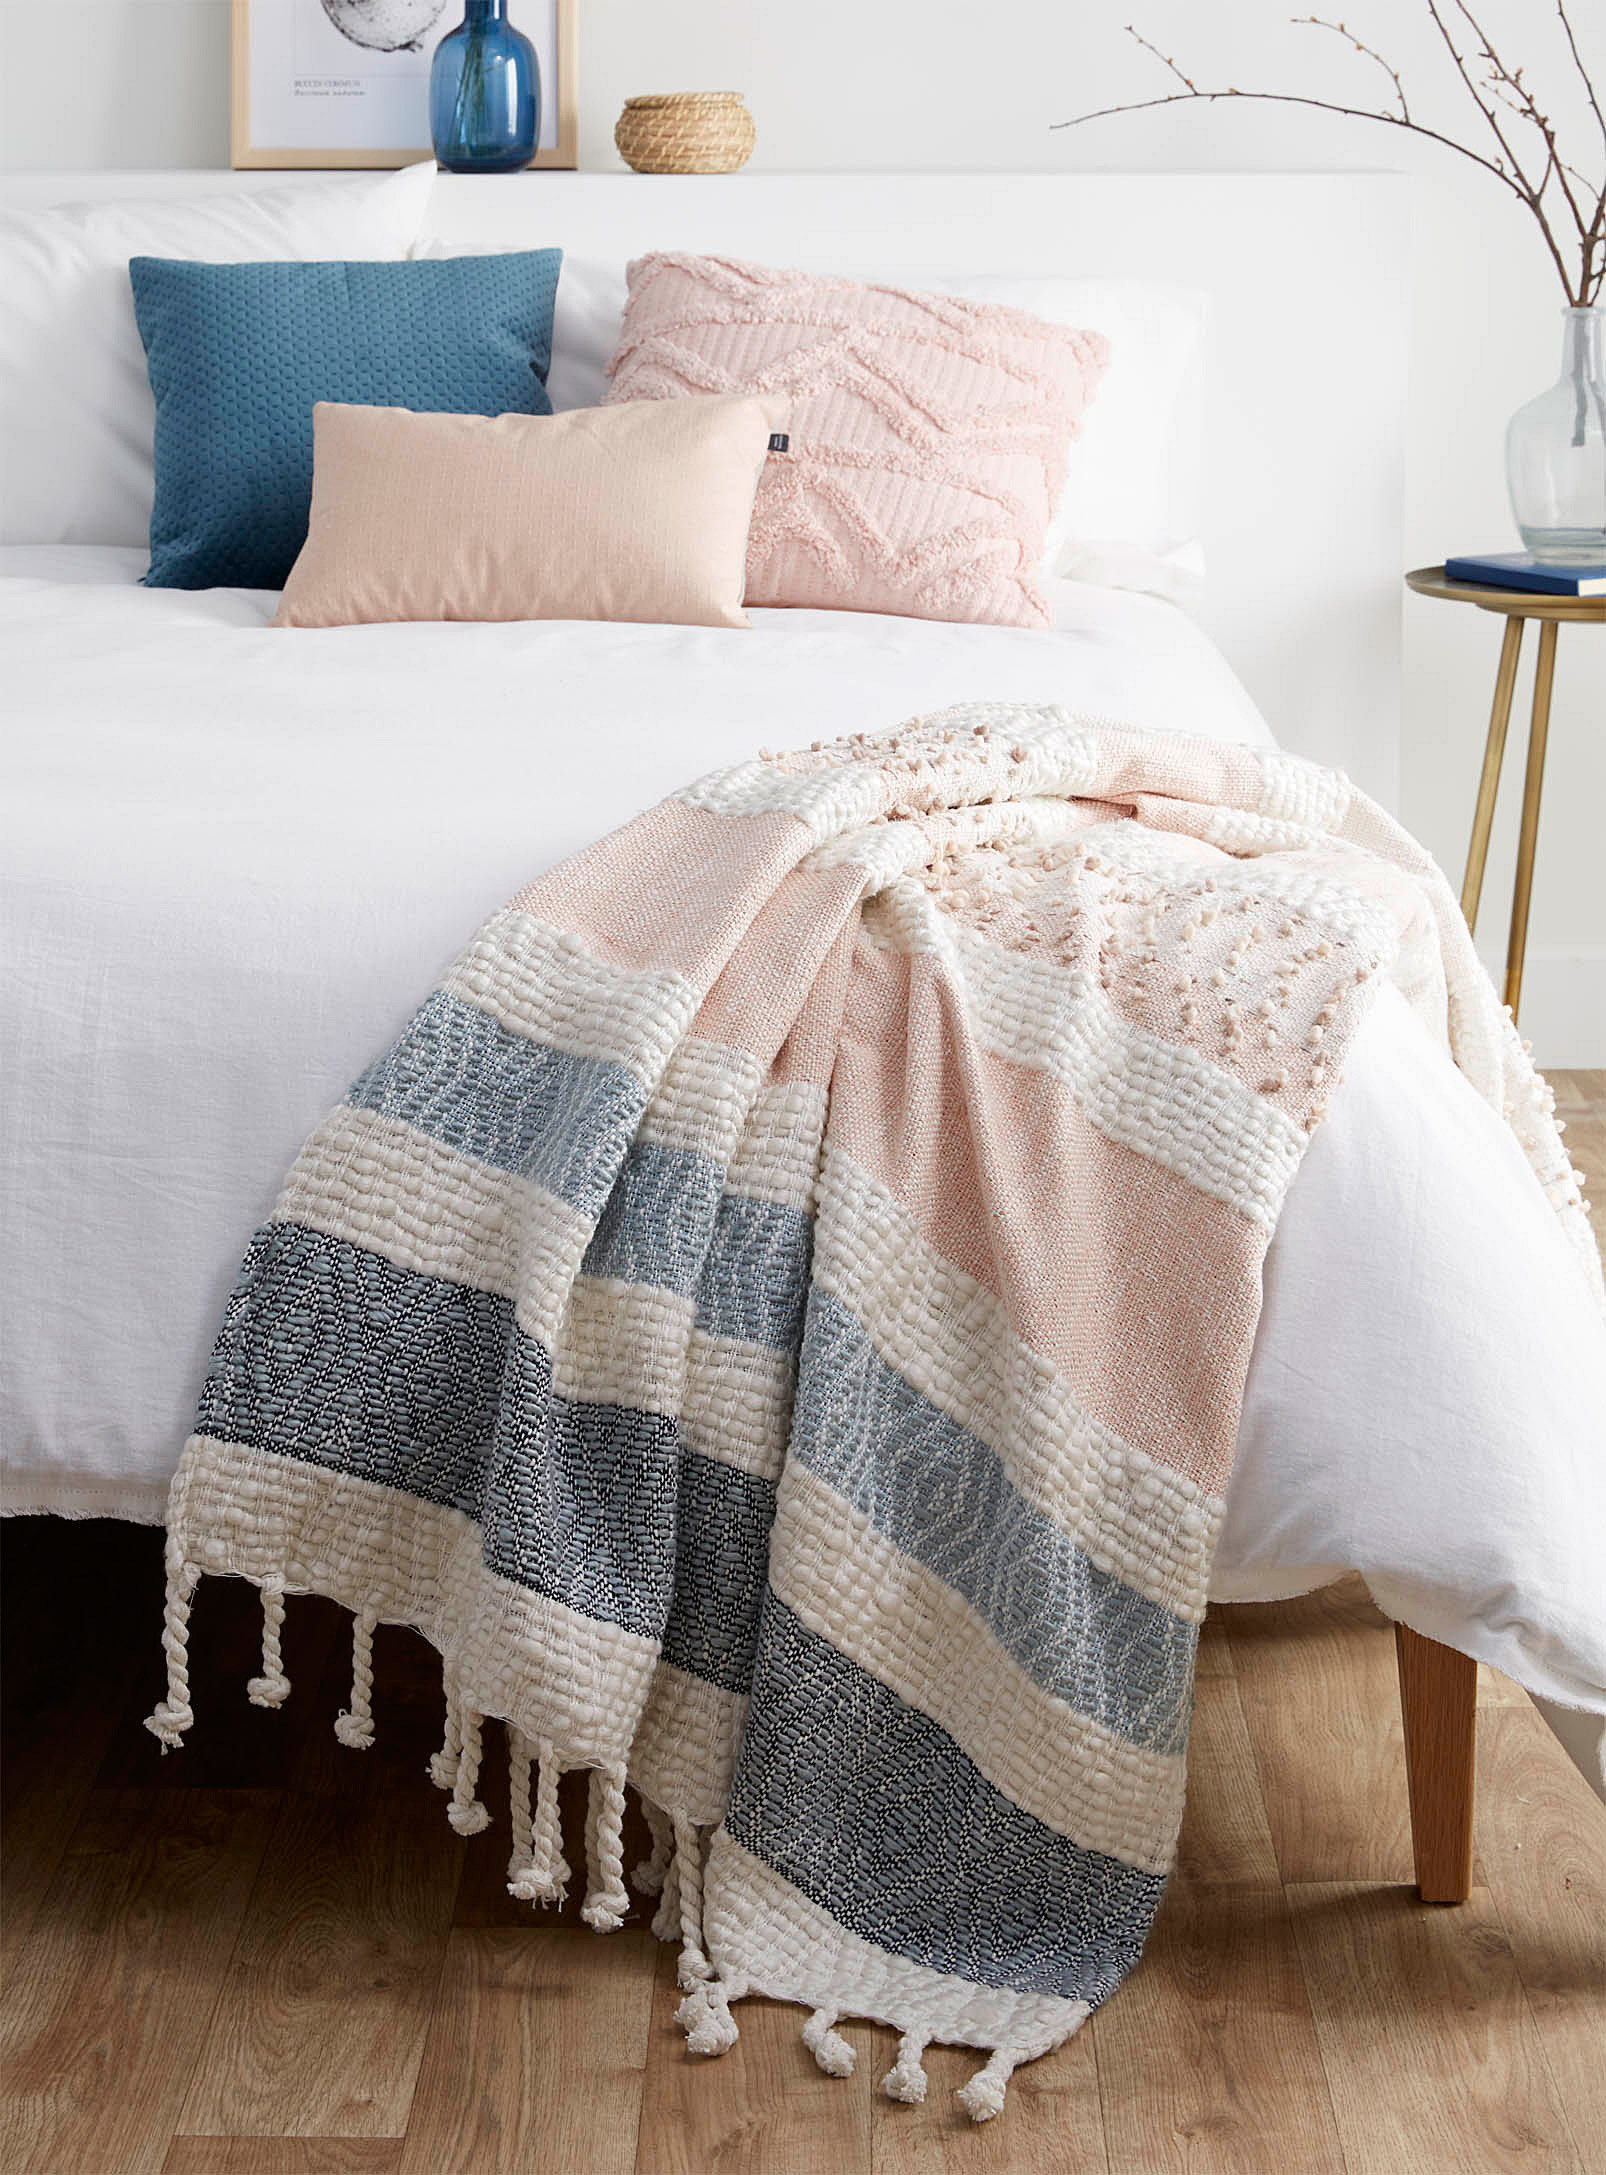 A thick throw blanket with tassels on the ends lying at the end of a bed